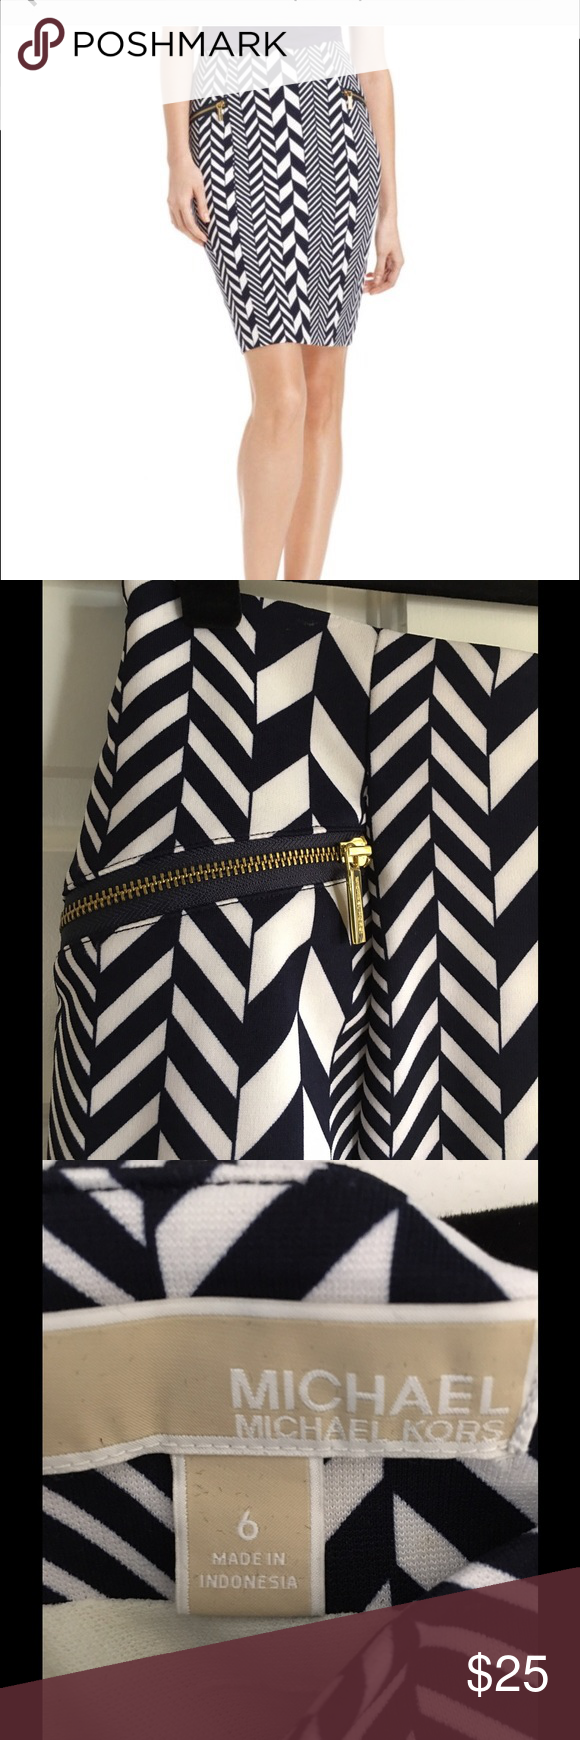 Michael Kors Navy & White chevron print skirt So classy skirt for work or going out. Worn once. Some stretch to this so will also fit a size 8. Michael Kors Skirts Pencil